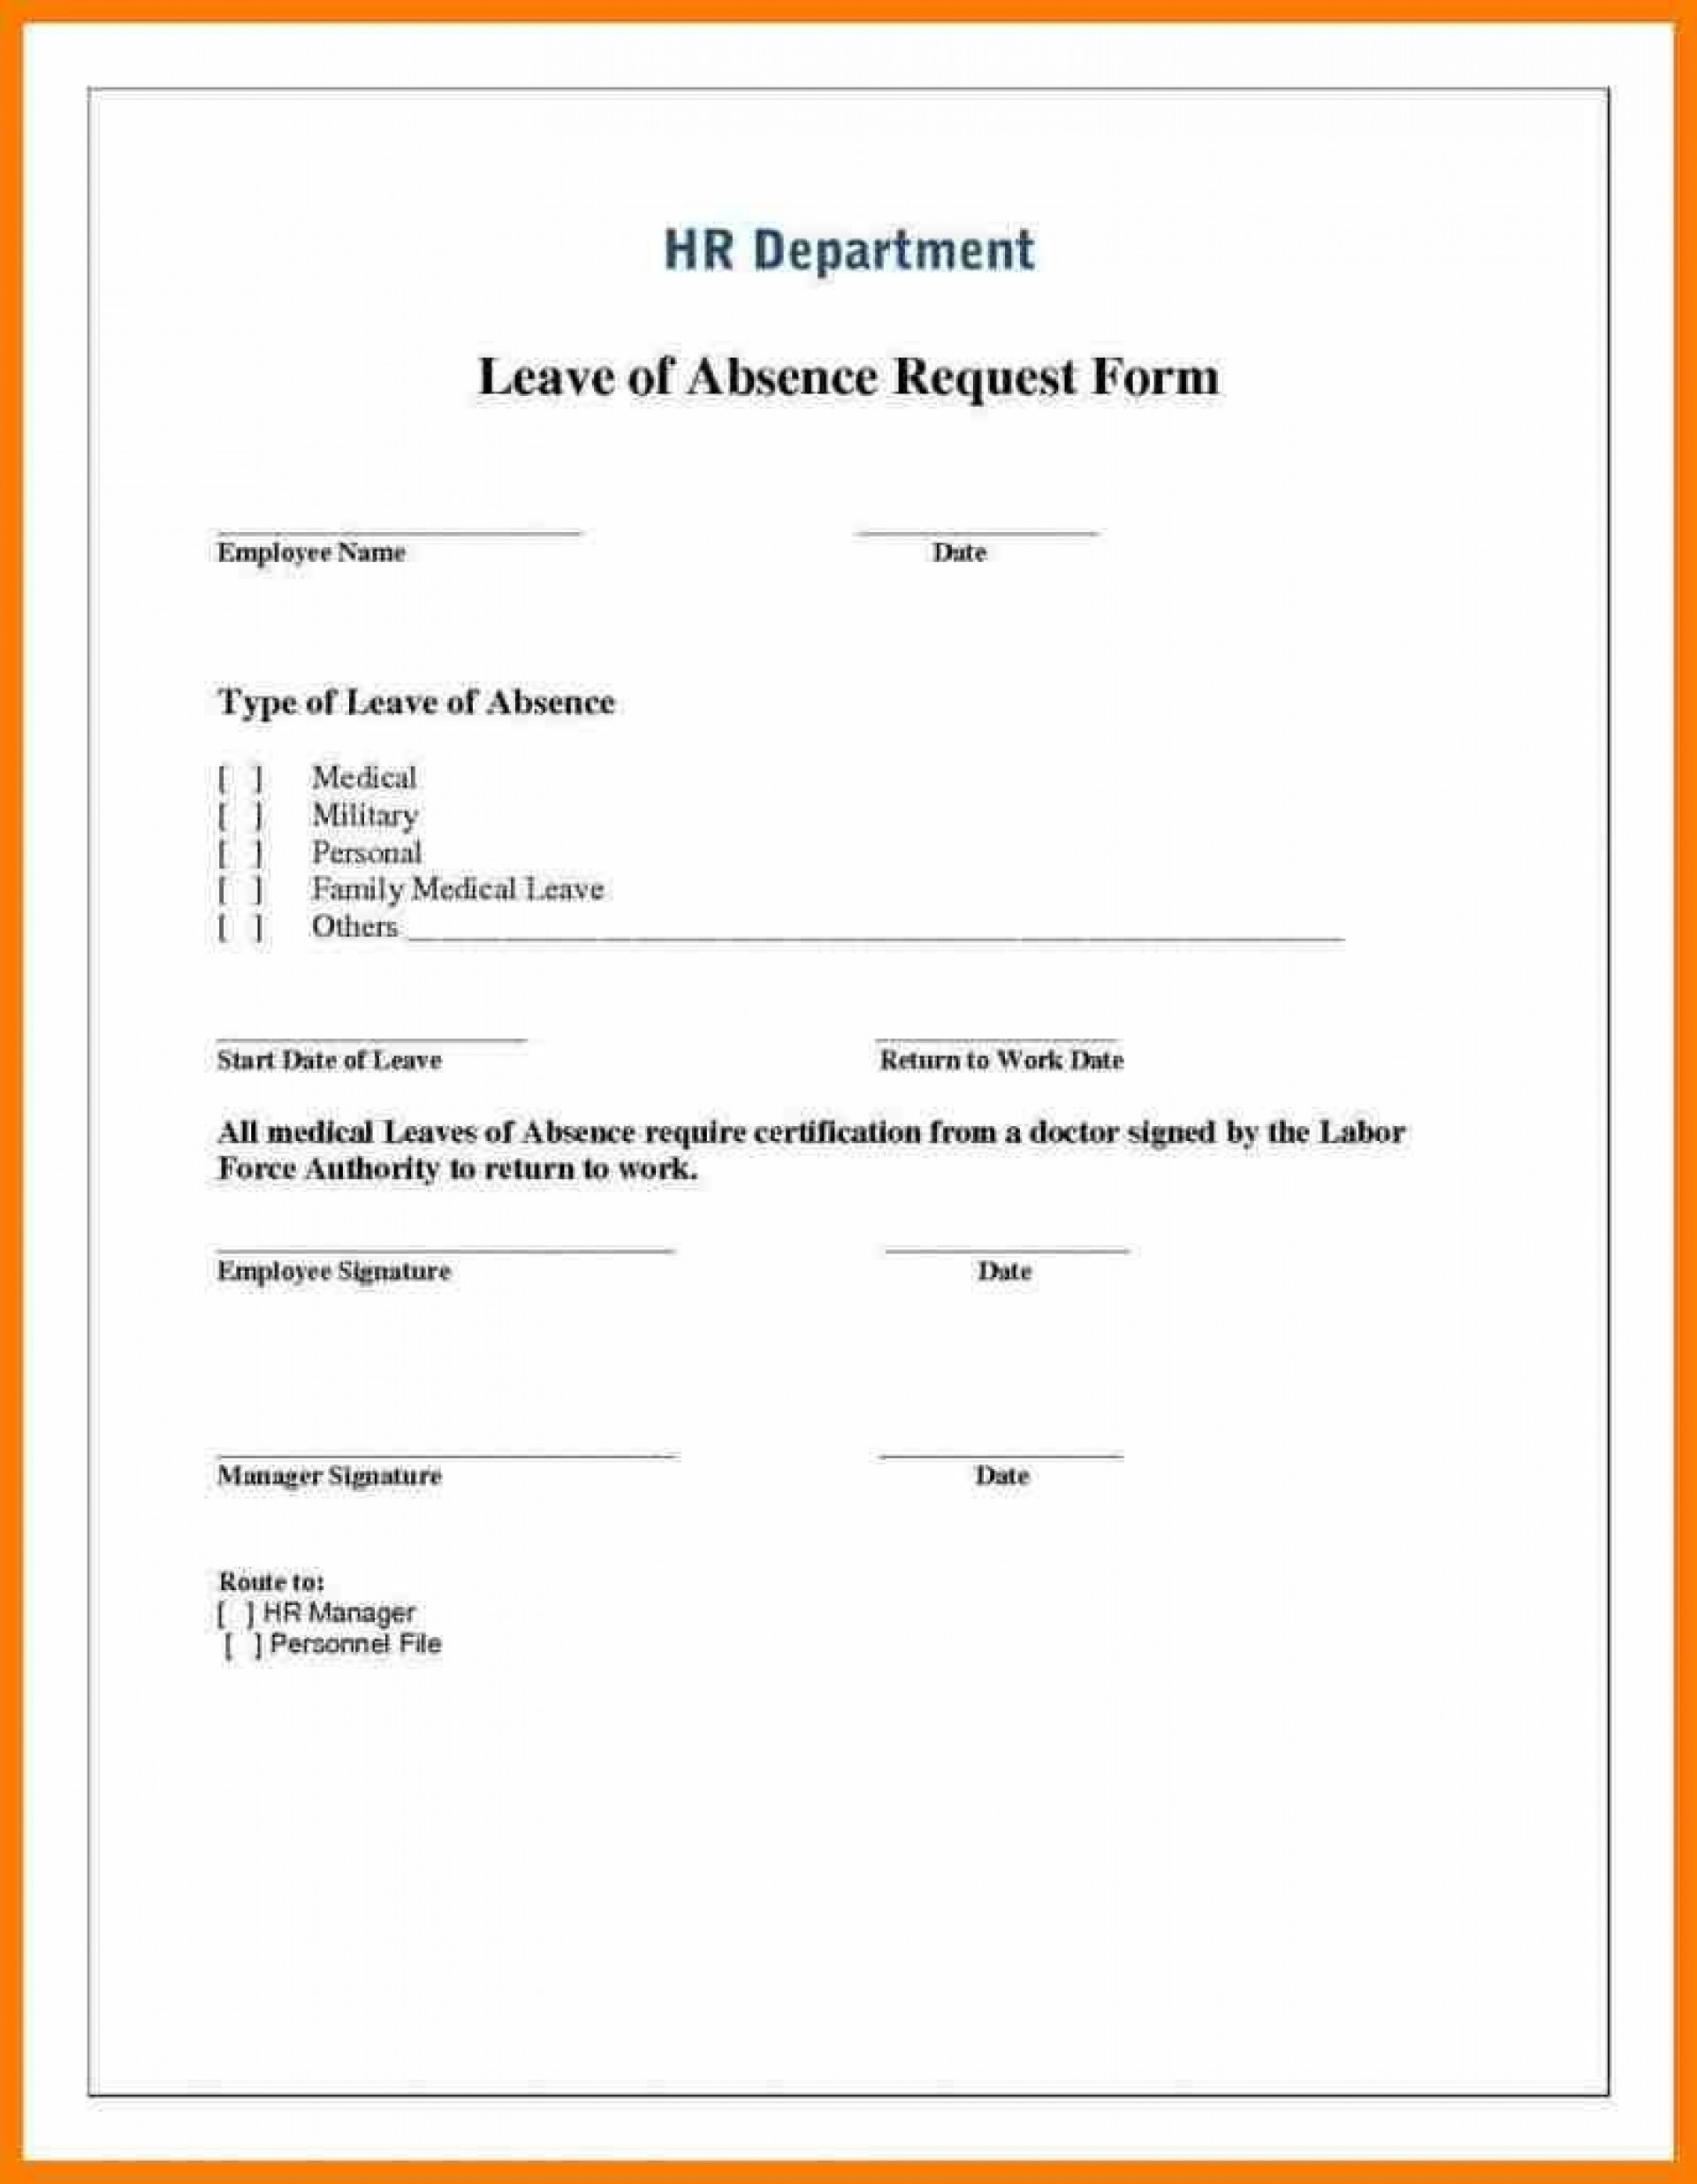 000 Wonderful Leave Of Absence Form Template Photo  Medical Request Free1920